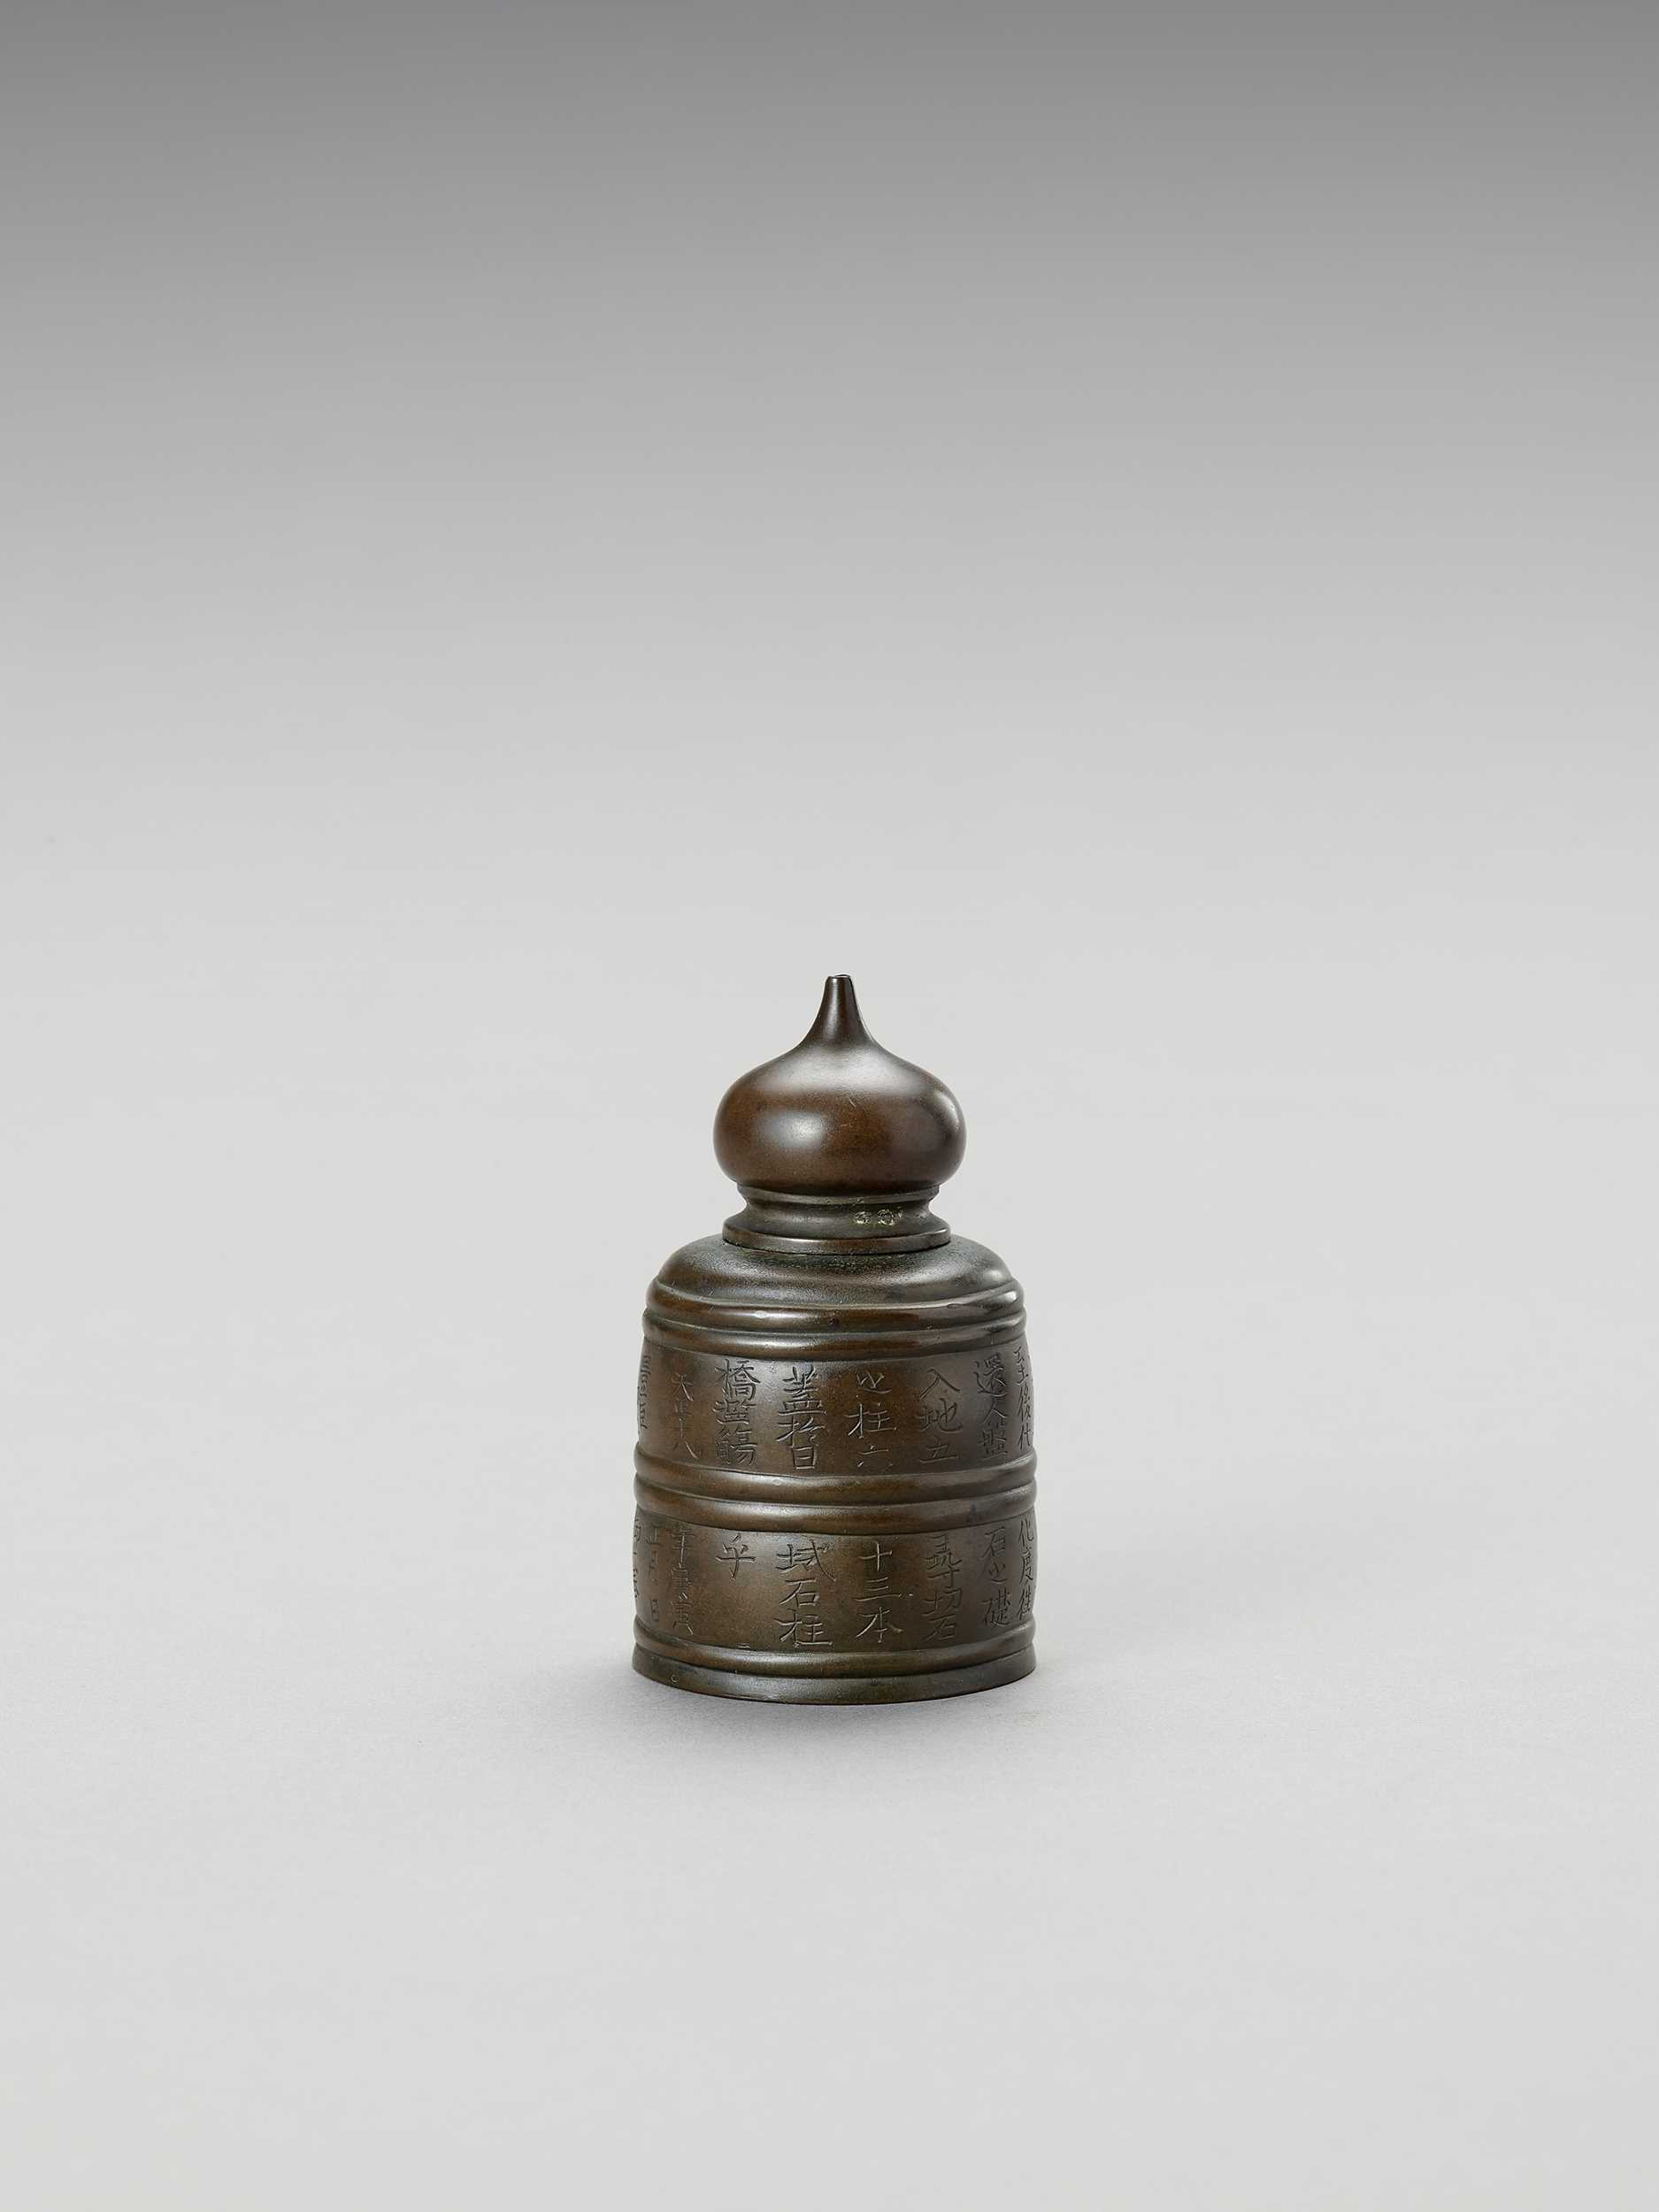 Lot 3 - AN INSCRIBED BRONZE SUITEKI (WATER DROPPER)